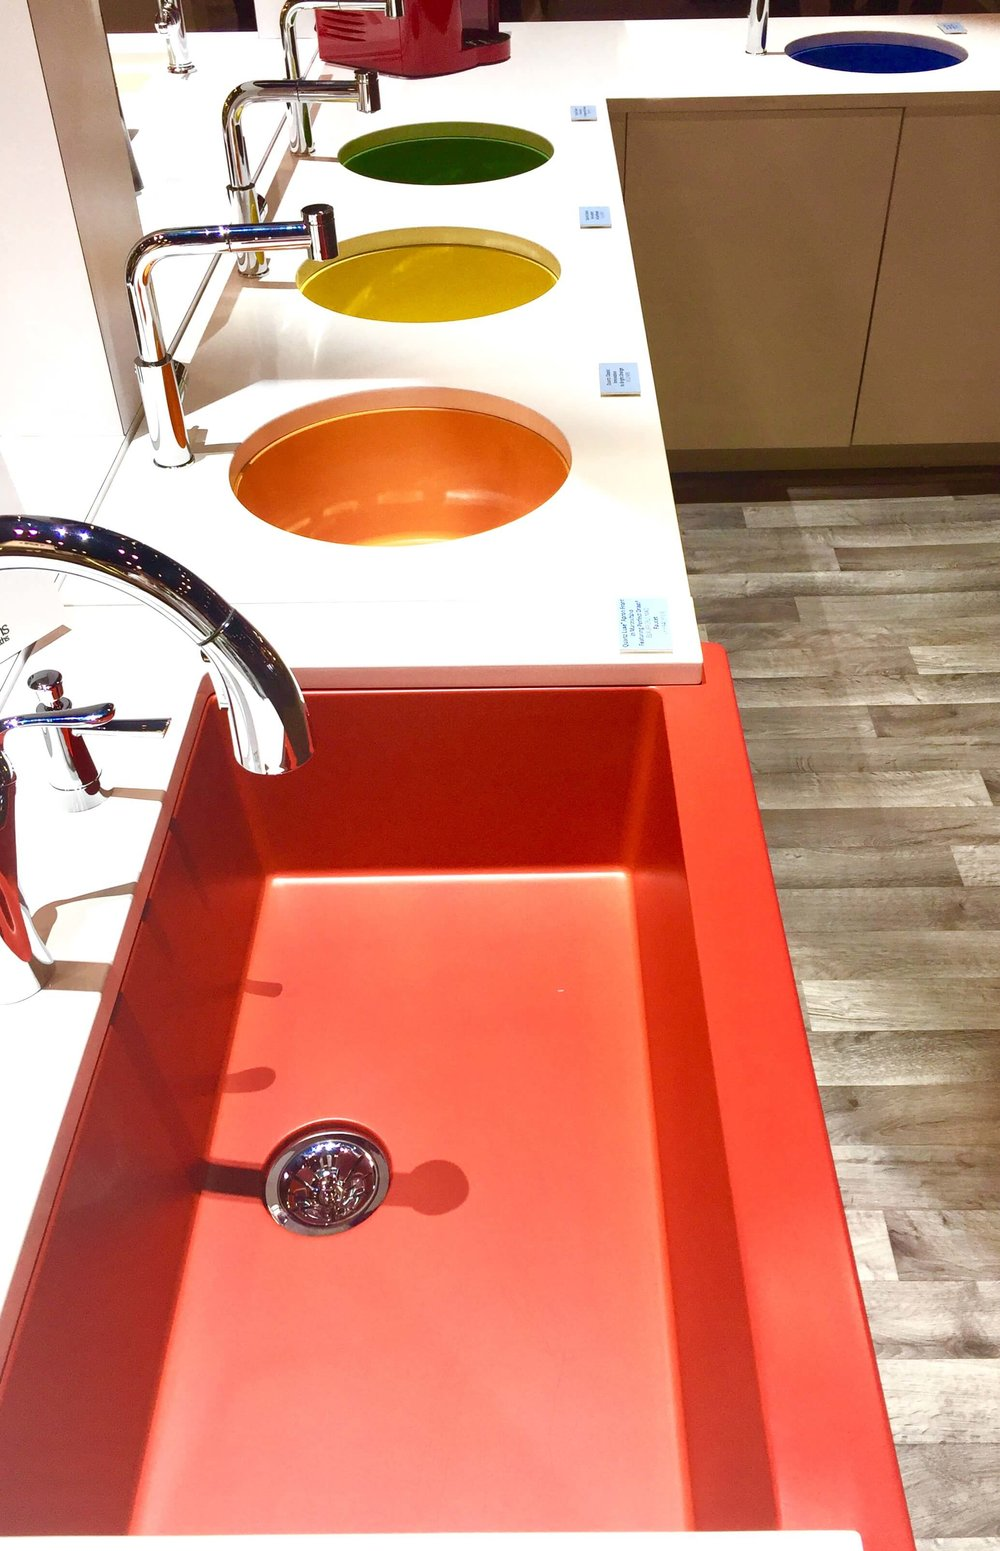 colorful bathroom sinks kitchen and bath trends at kbis 2017 sinks and faucets 12387